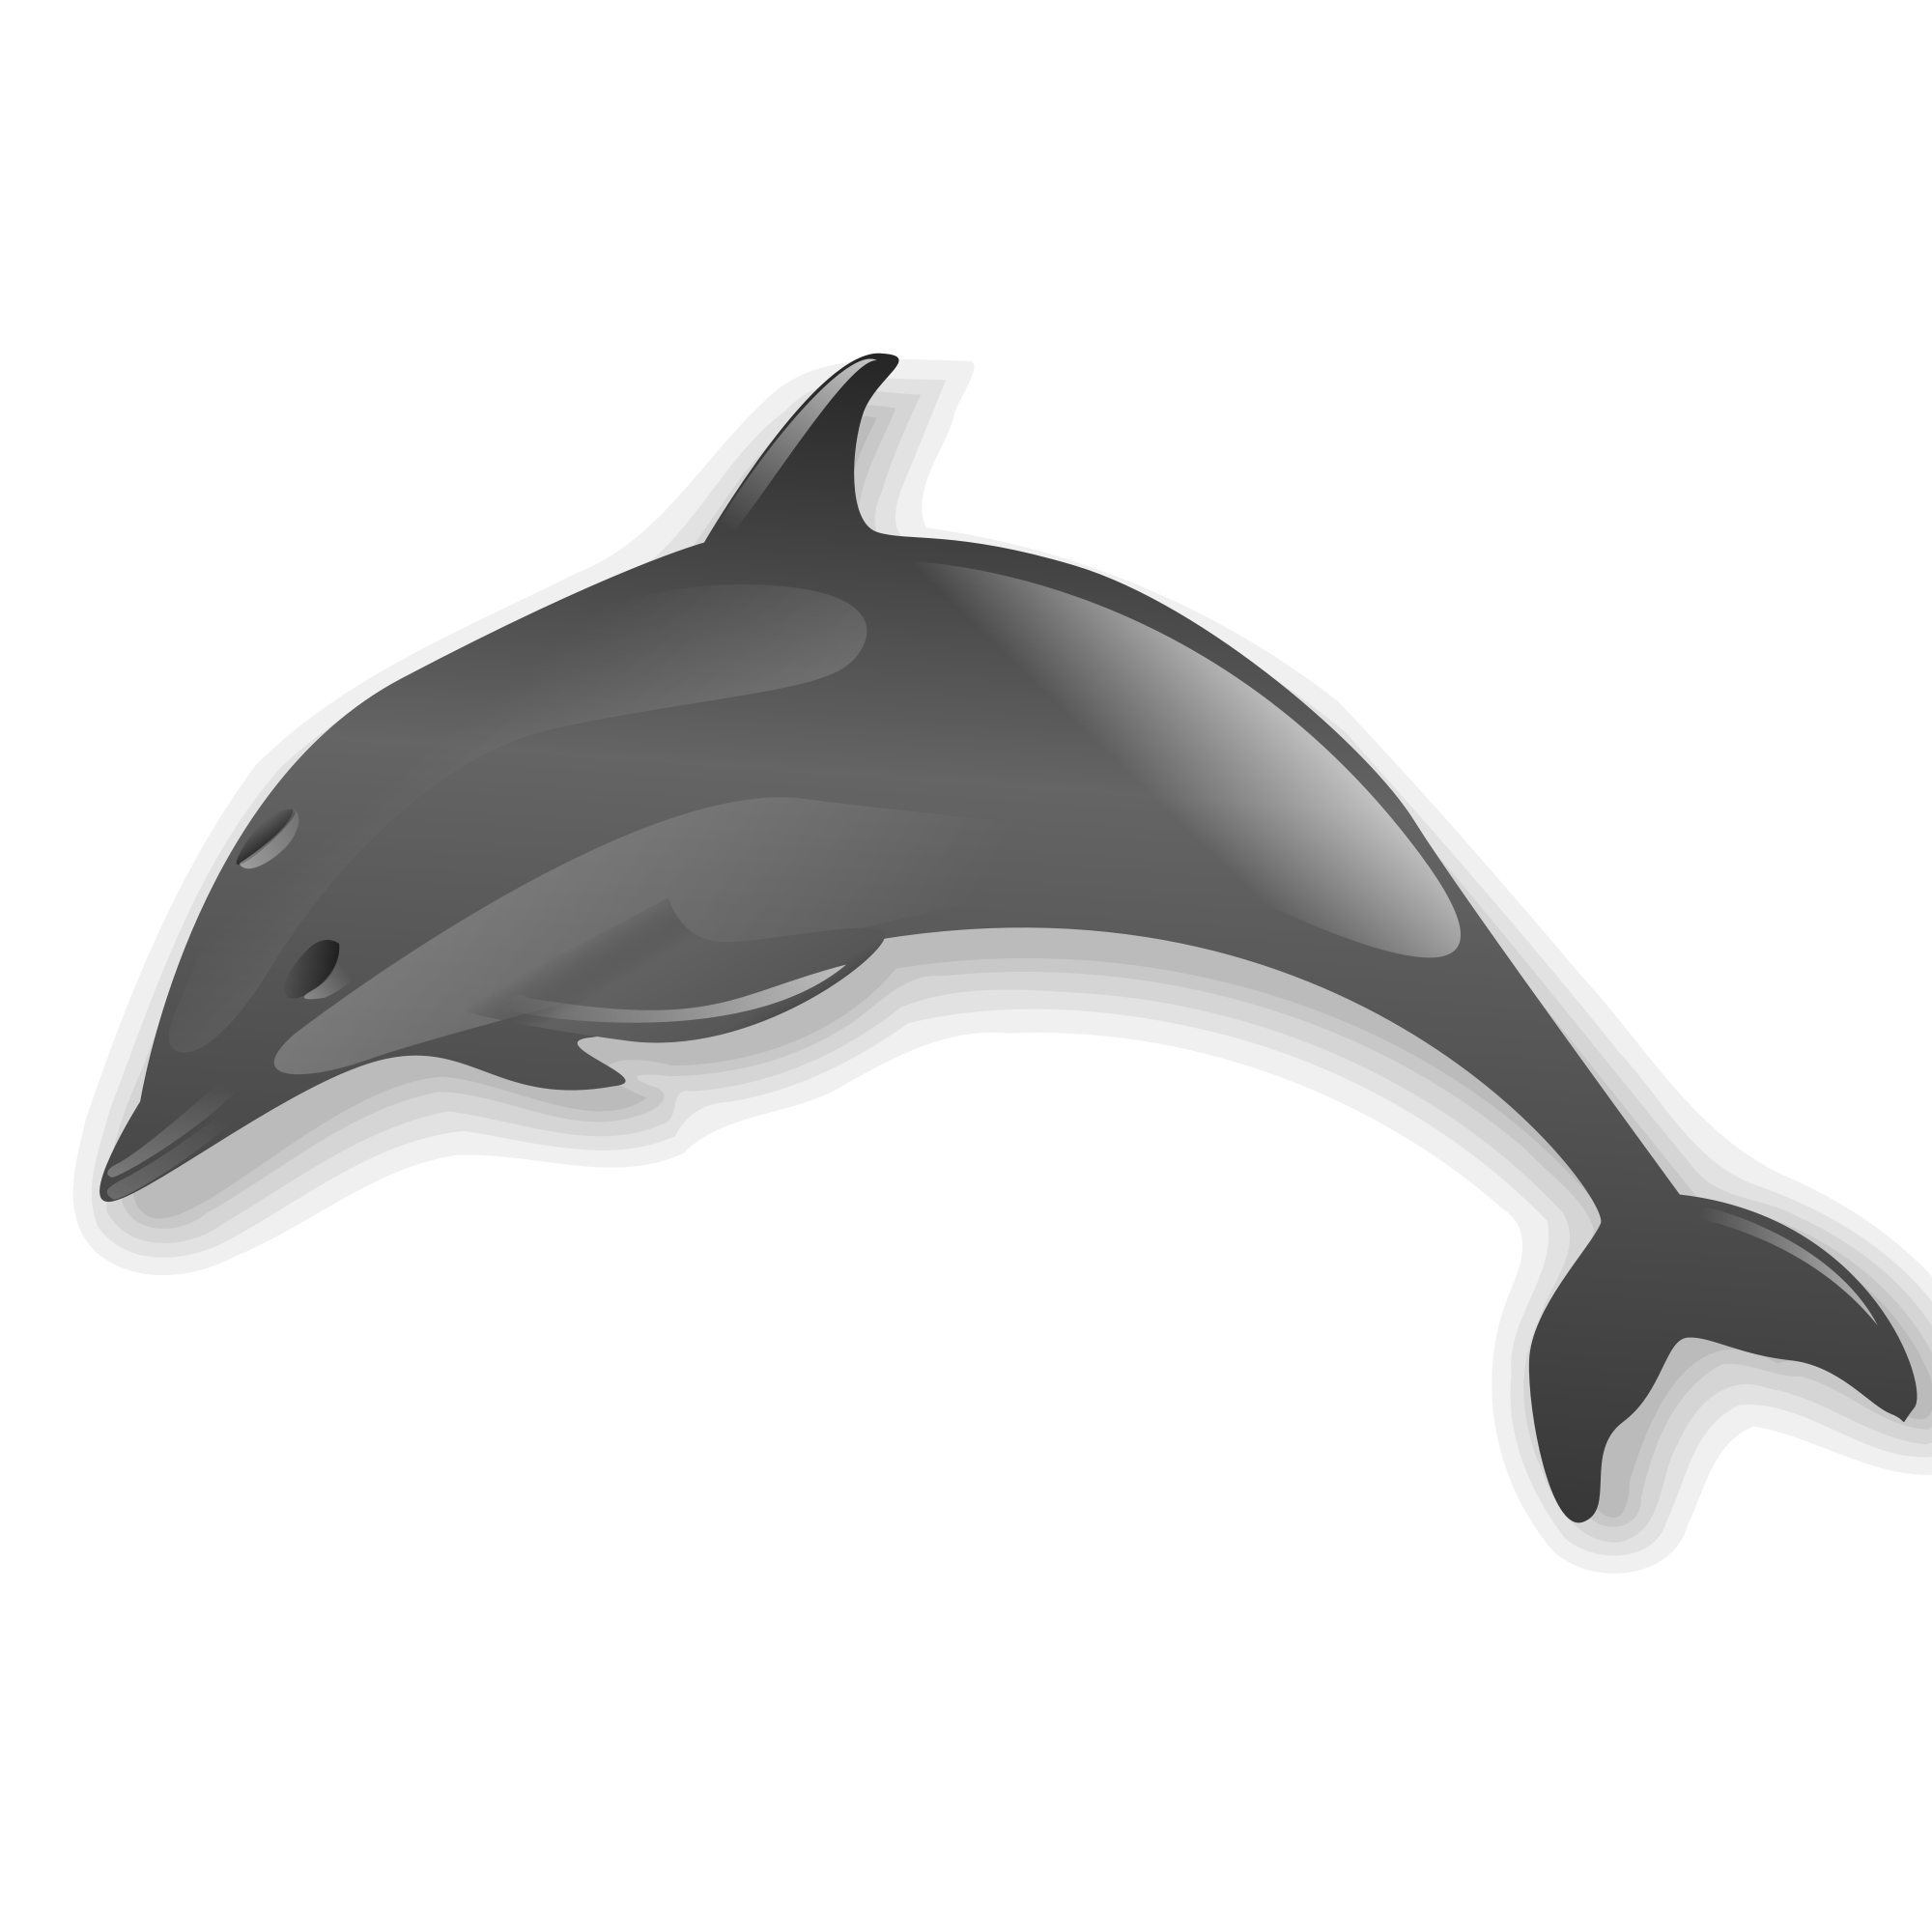 Water clipart dolphin. File svg wikimedia commons